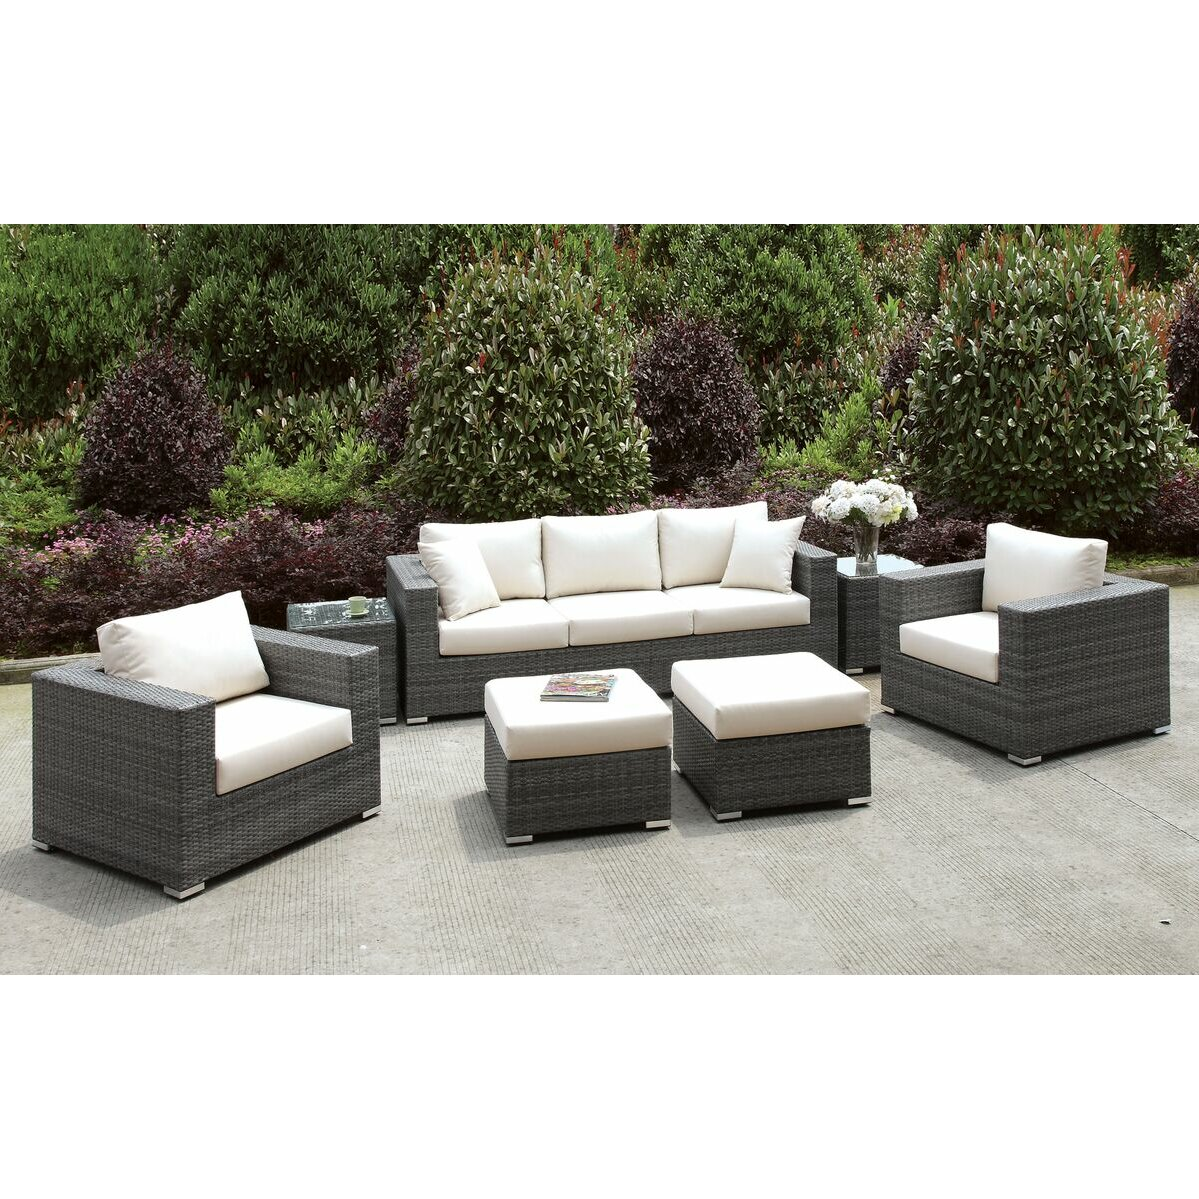 Brayden Studio Peters Deep Seating Group With Cushions Wayfair